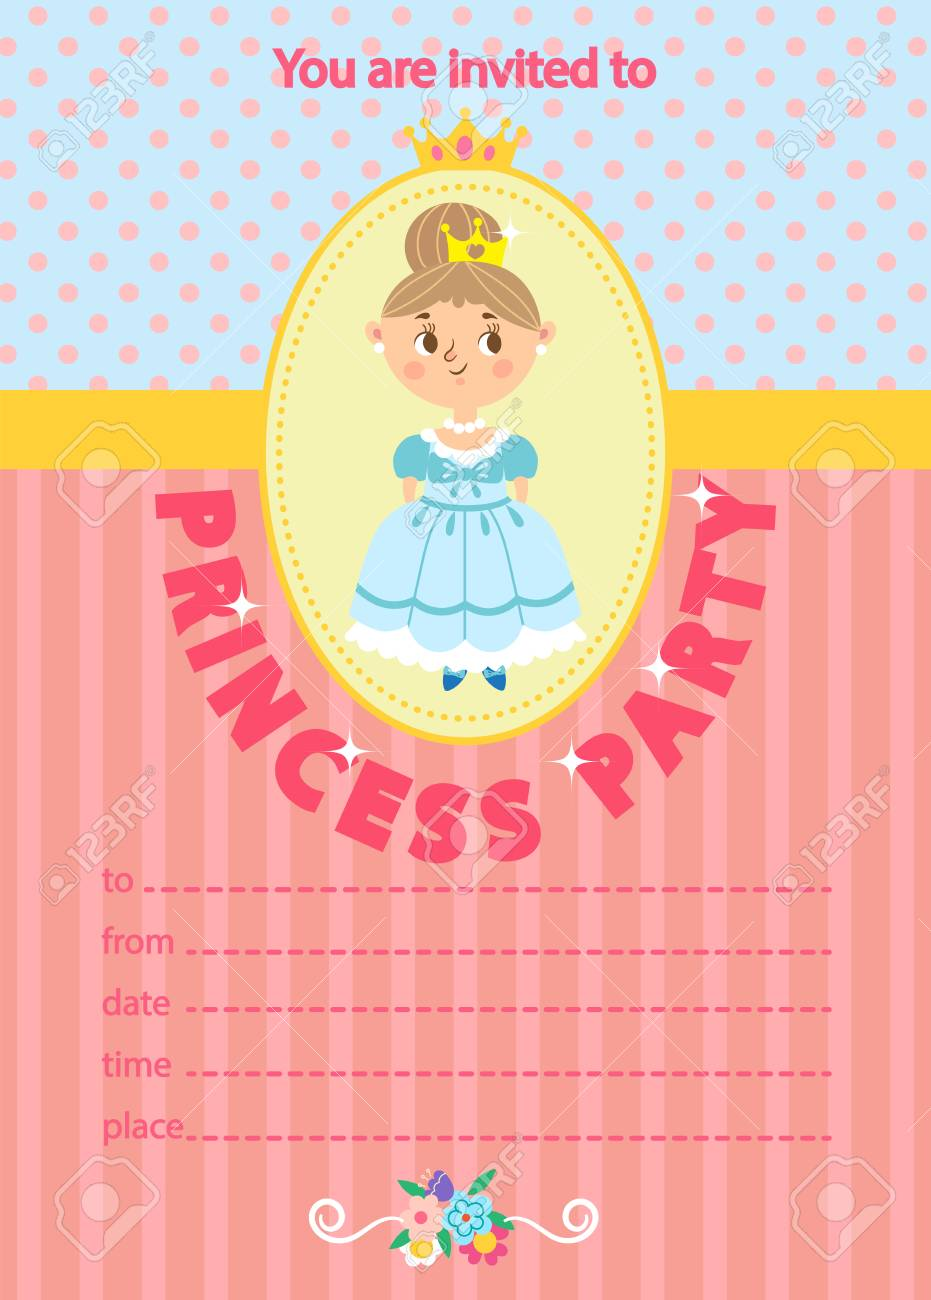 Princess Birthday Party. Invitation Template Card. Kids Fun In ...